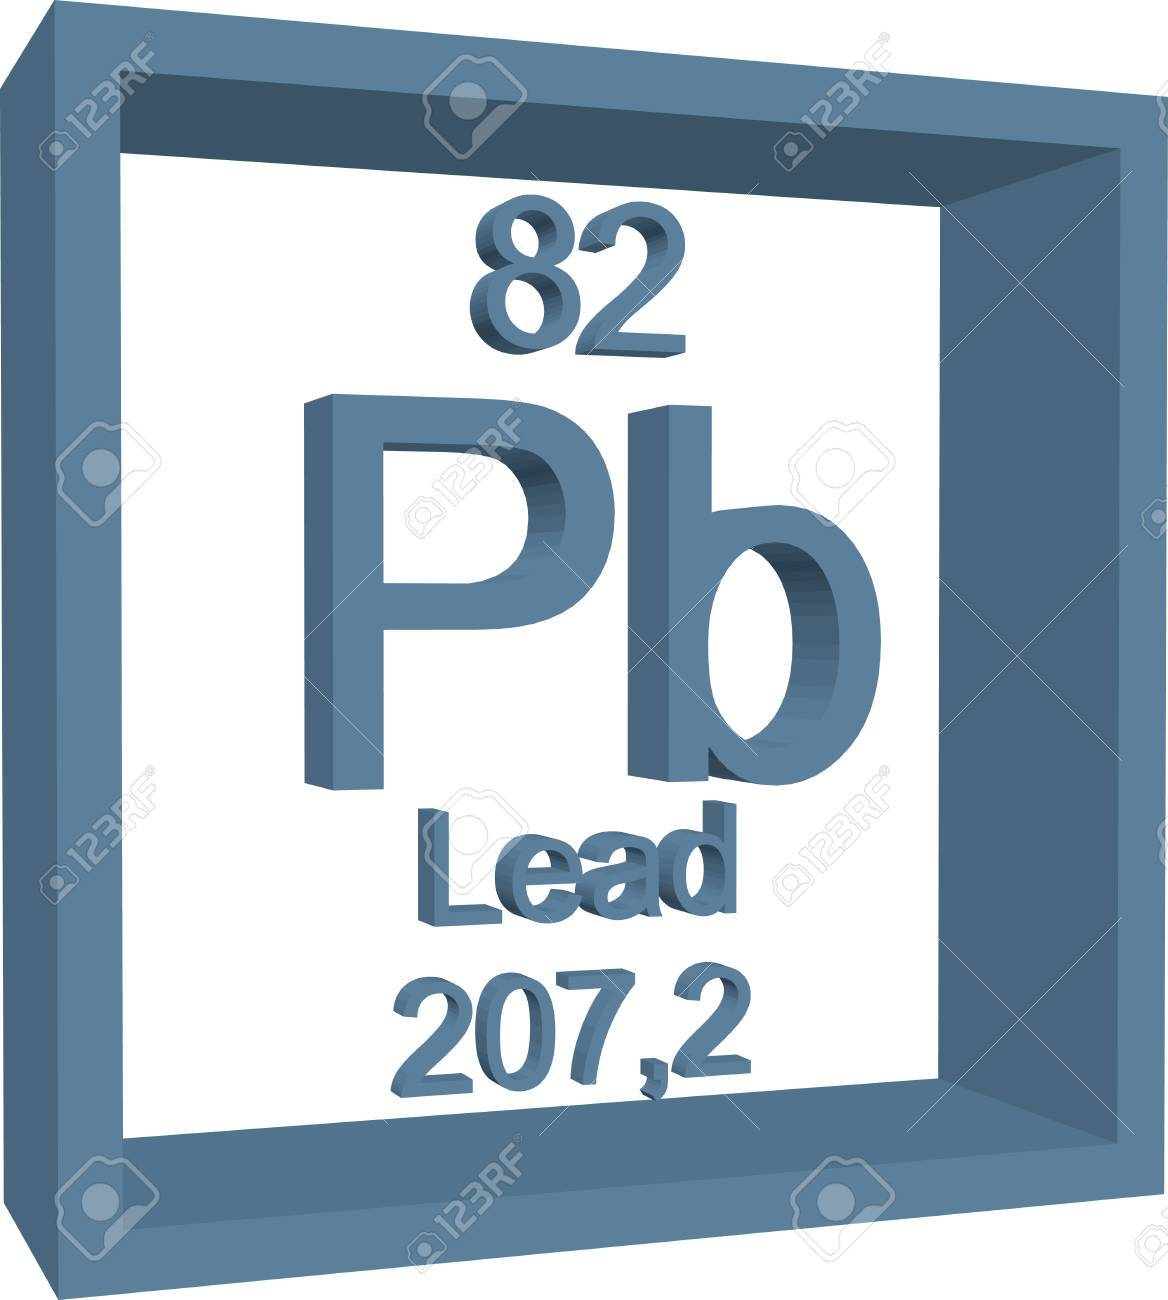 Periodic table of elements lead royalty free cliparts vectors periodic table of elements lead stock vector 57970969 urtaz Choice Image